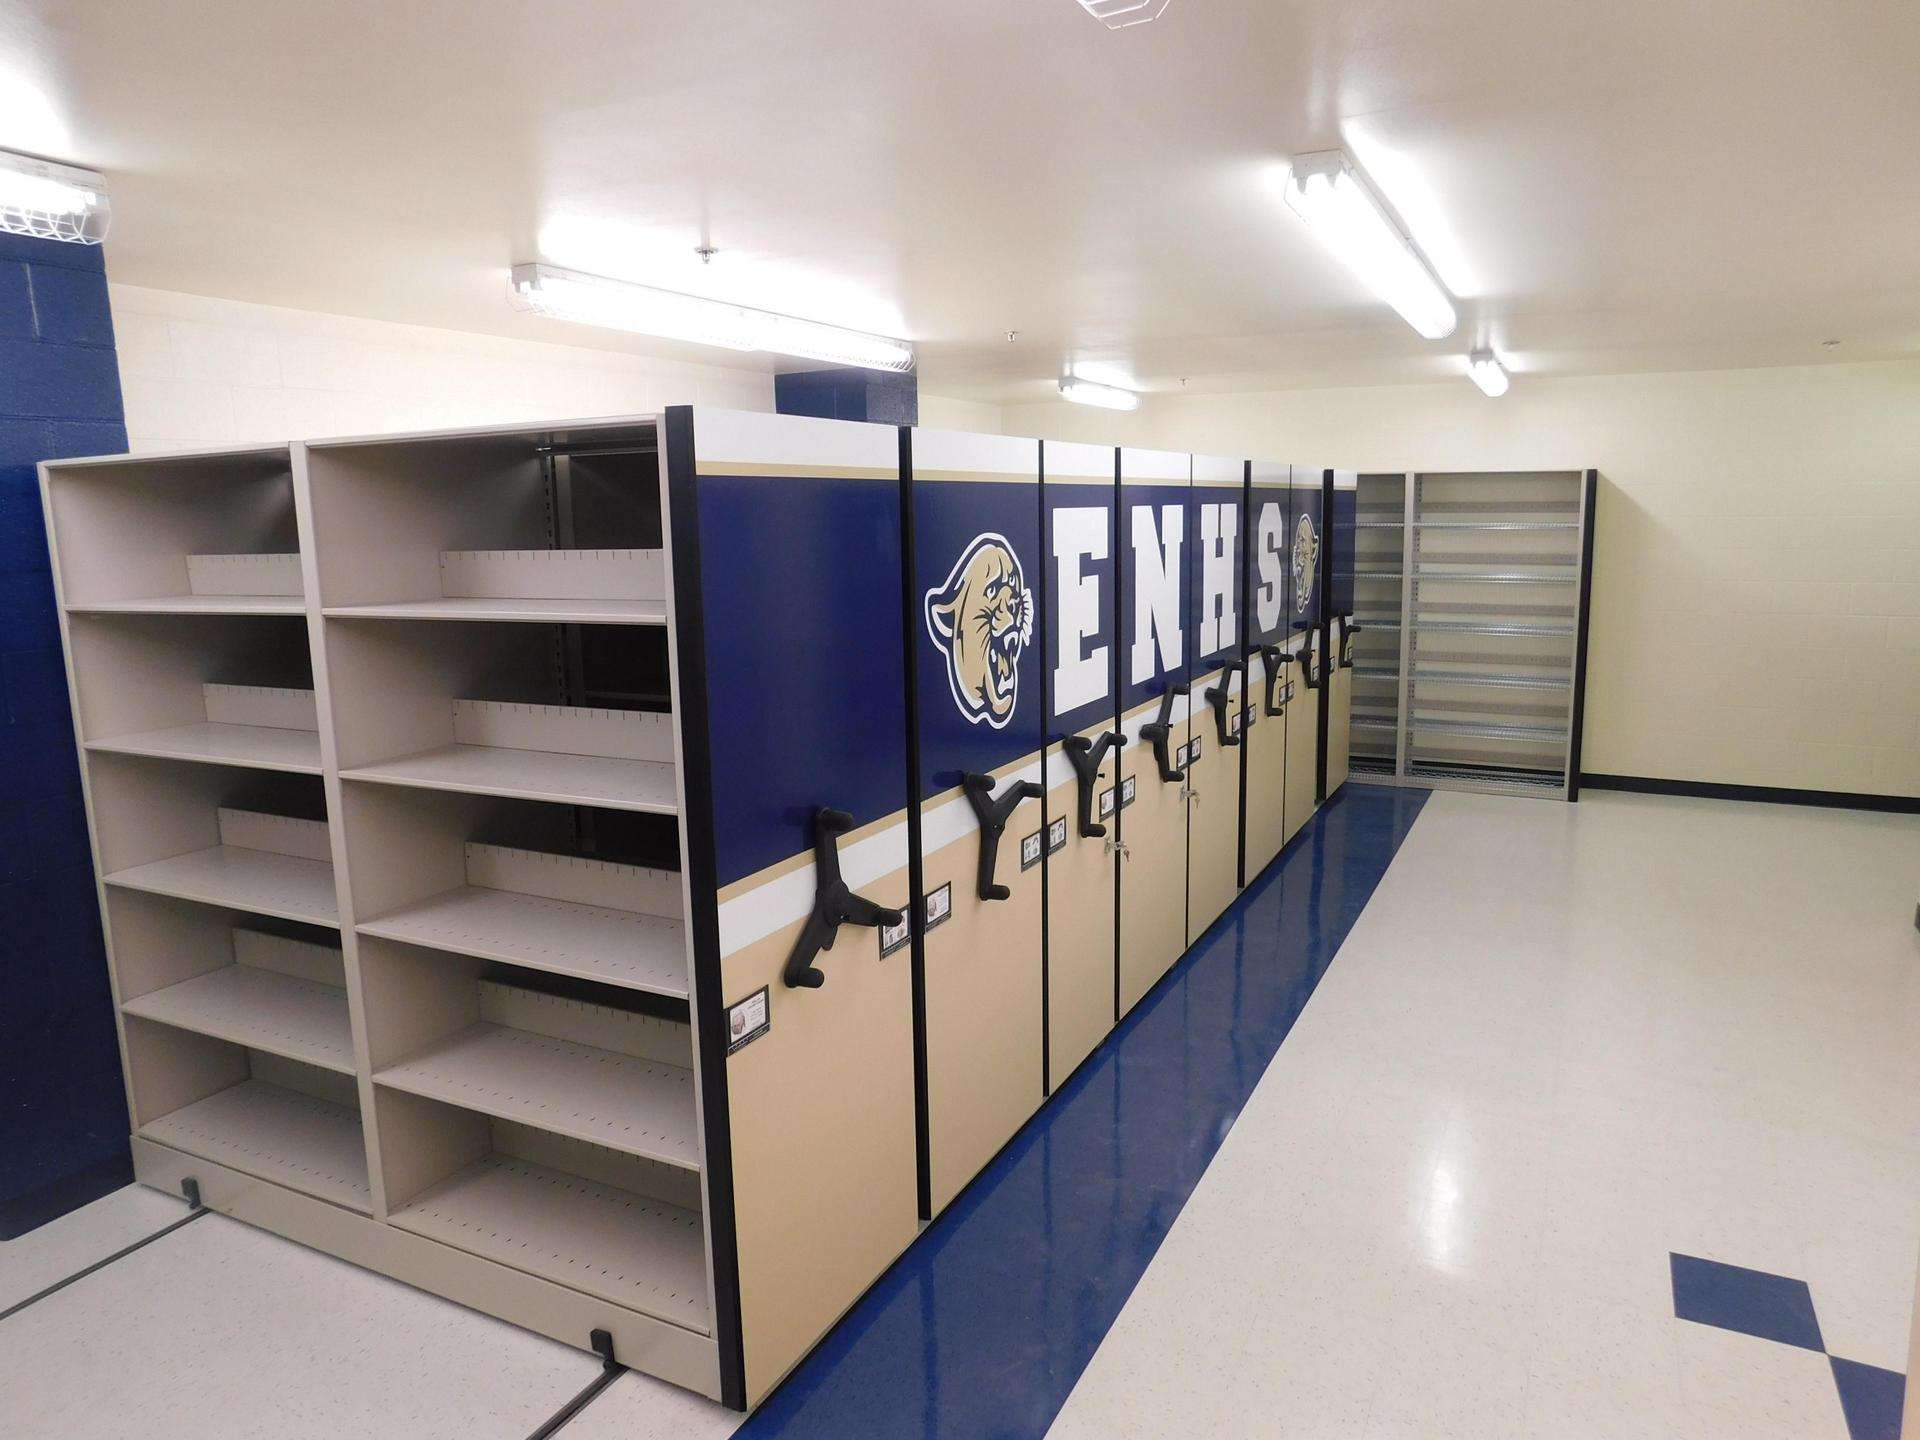 ENHS Athletic Storage Containers